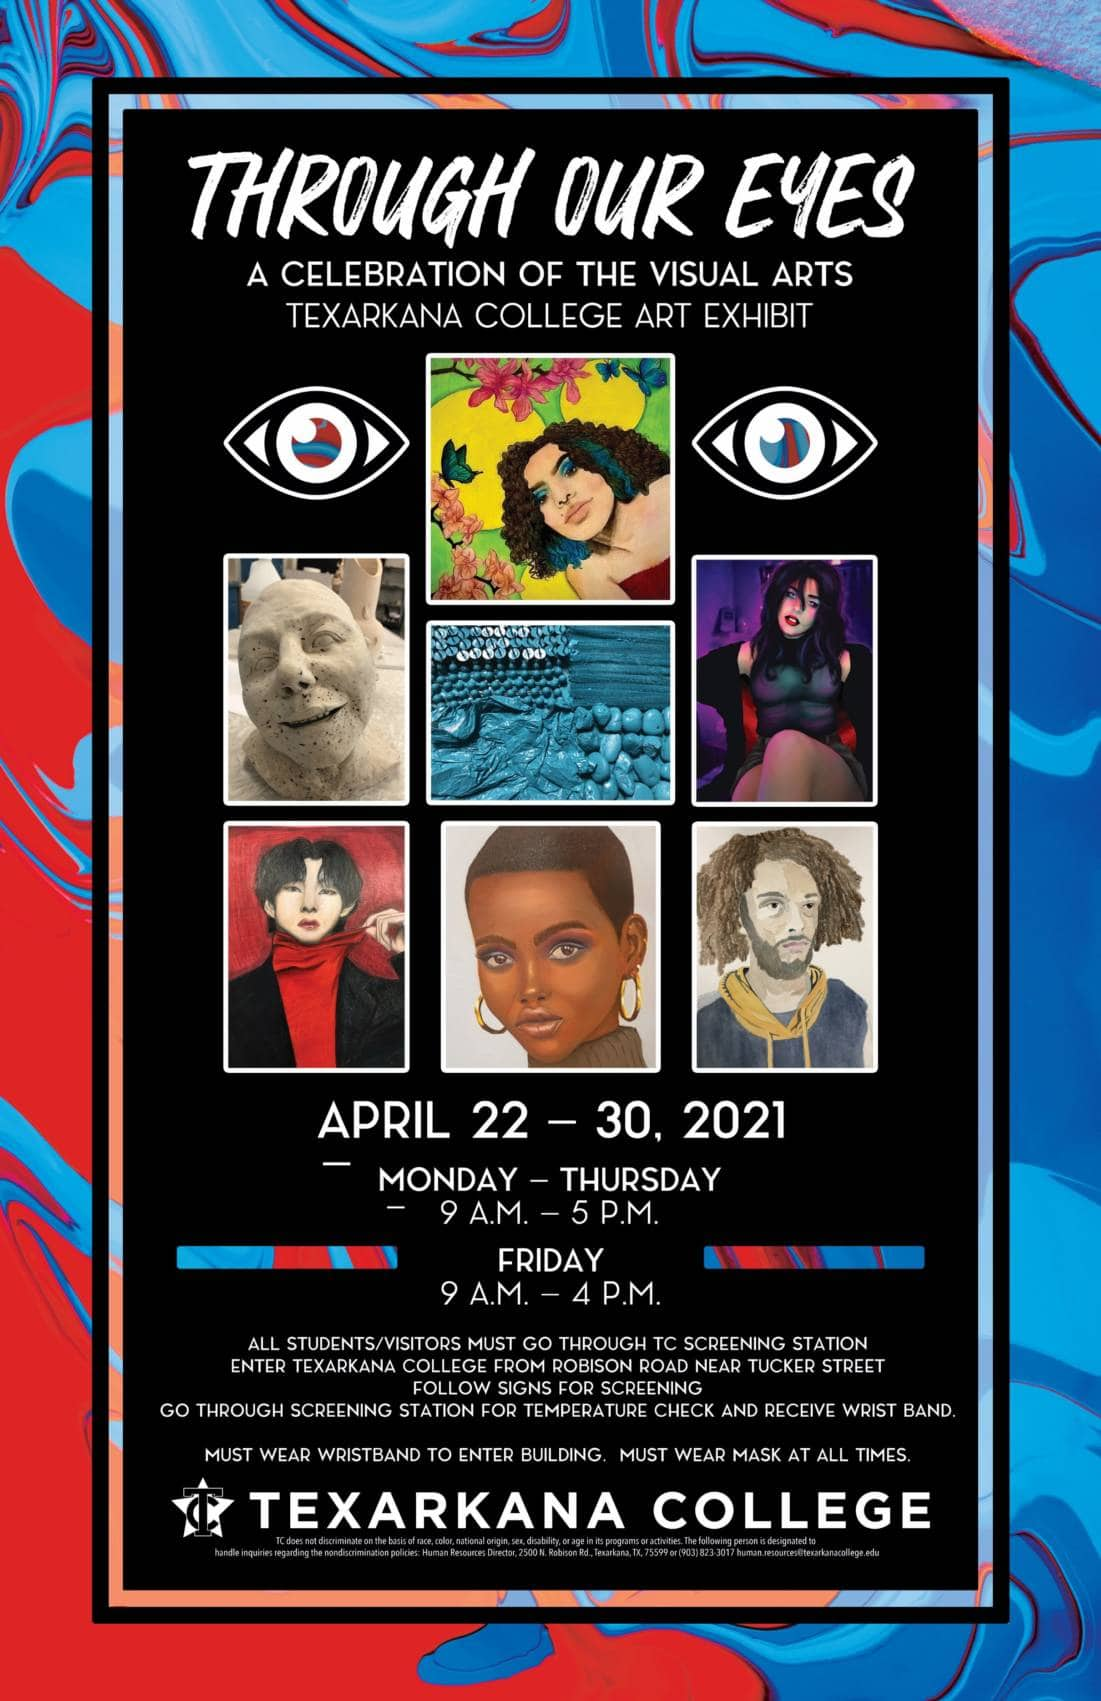 Through Our Eyes - Visual Arts Exhibit, April 22-30, 2021 in the Stillwell Humanities Lobby